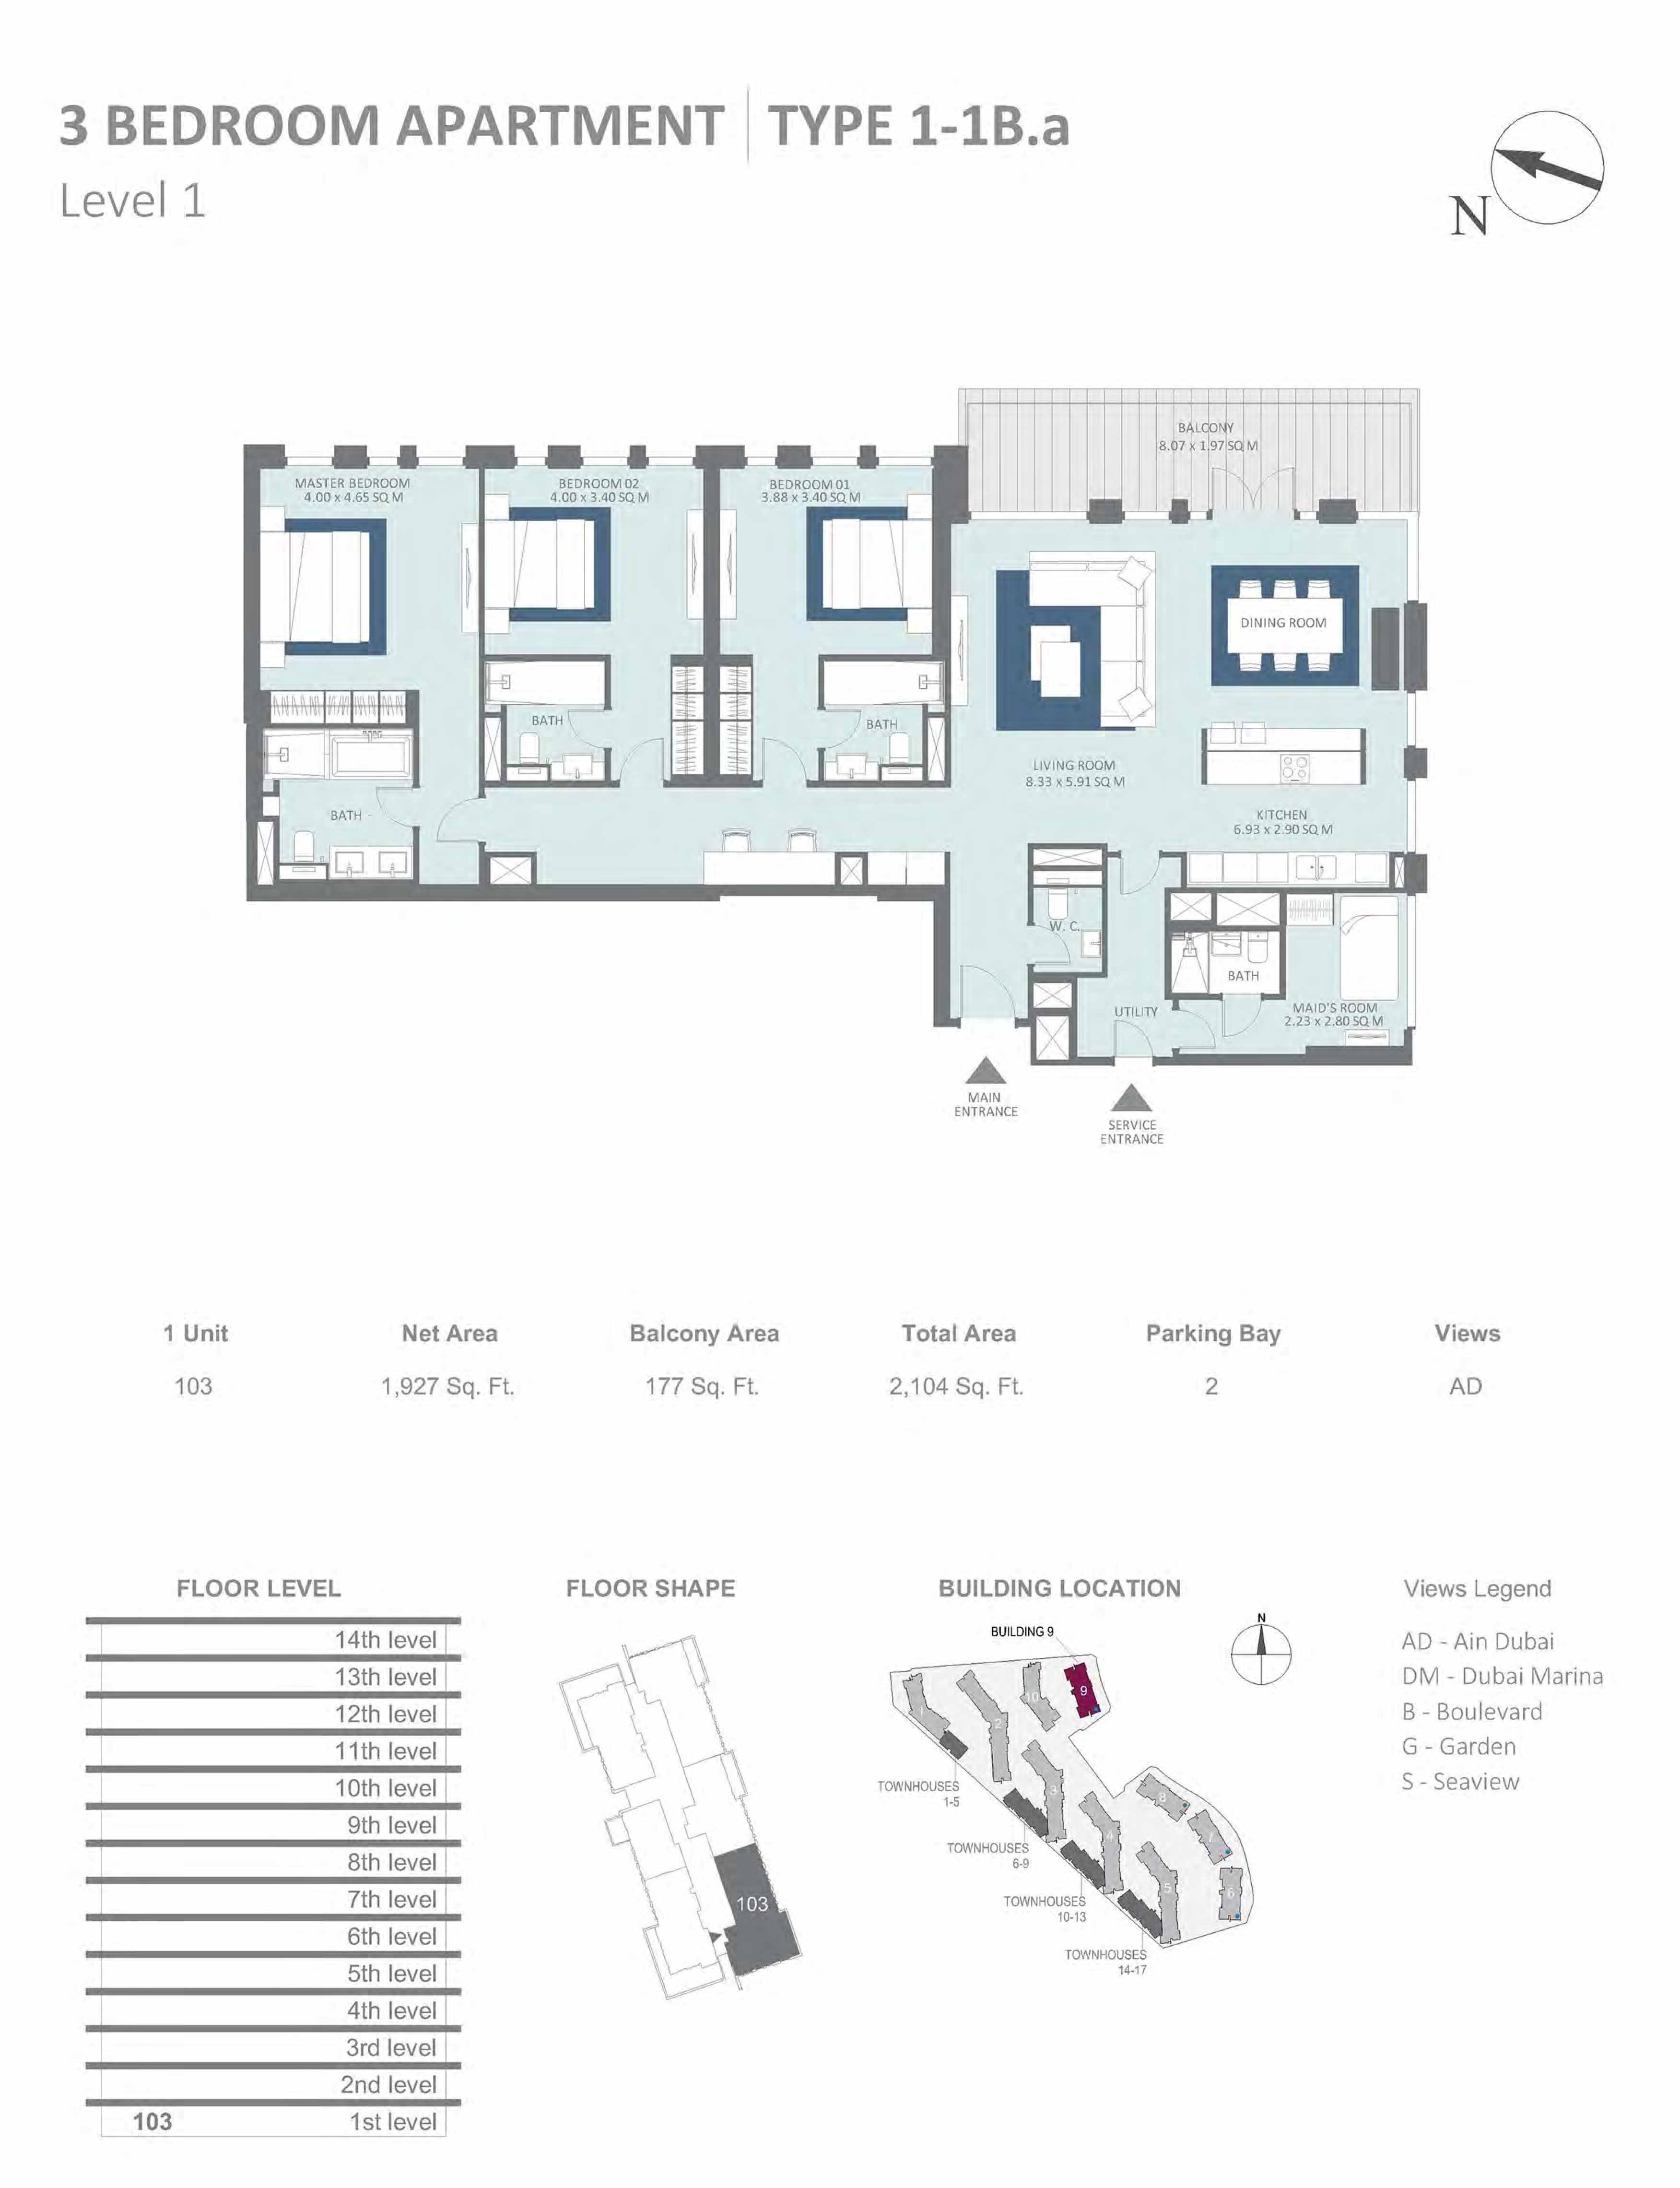 Building 9 - 3 Bedroom Type 1-1B.A, Level 1 Size 2104 sq.ft